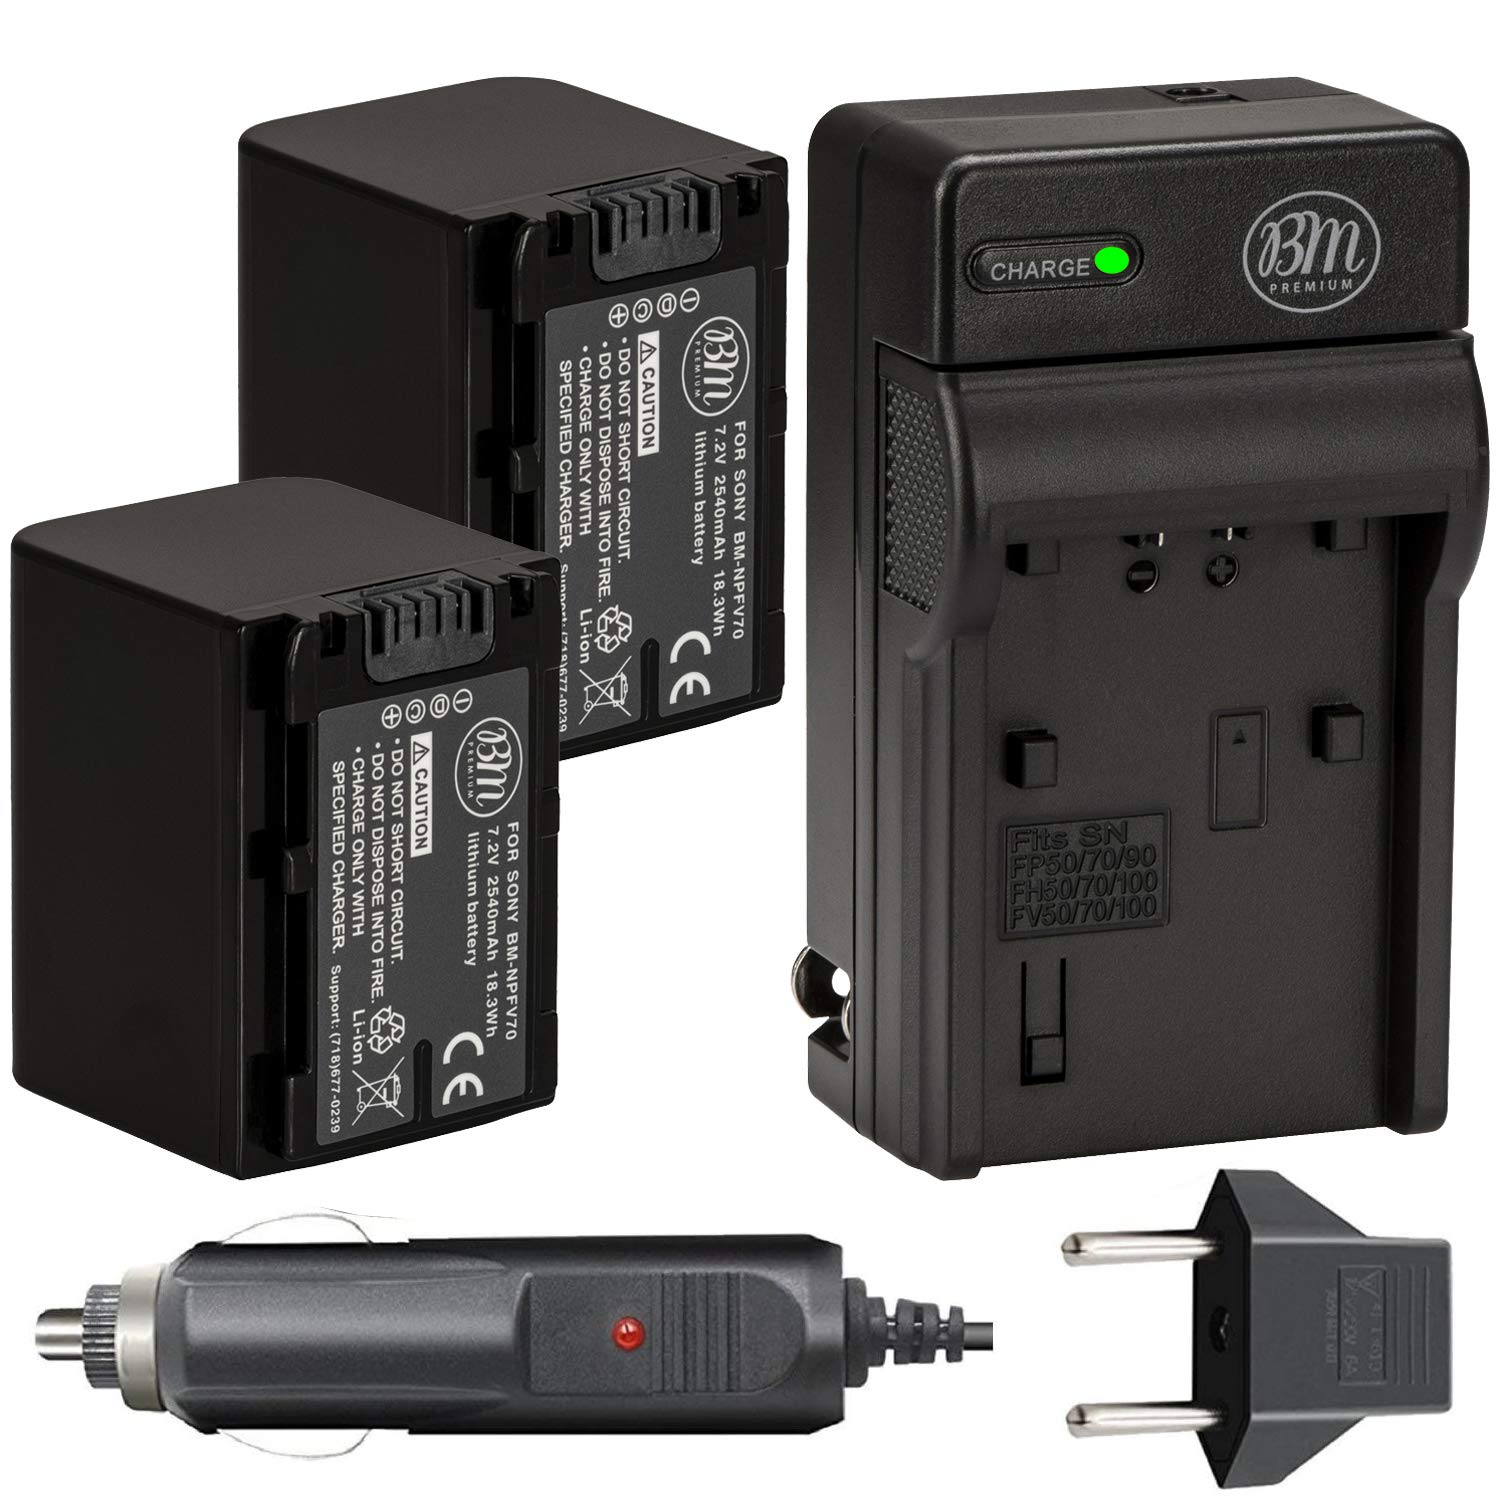 BM 2 NP-FV70 Batteries and Charger Kit for Sony FDR-AX53 FDR-AX700 HDR-CX455/B HDR-CX675/B HDR-CX900 HDR-PJ340 HDR-PJ540 HDR-PJ670/B HDR-PJ810 FDR-AX33/B FDR-AX100 Handycam Camcorder